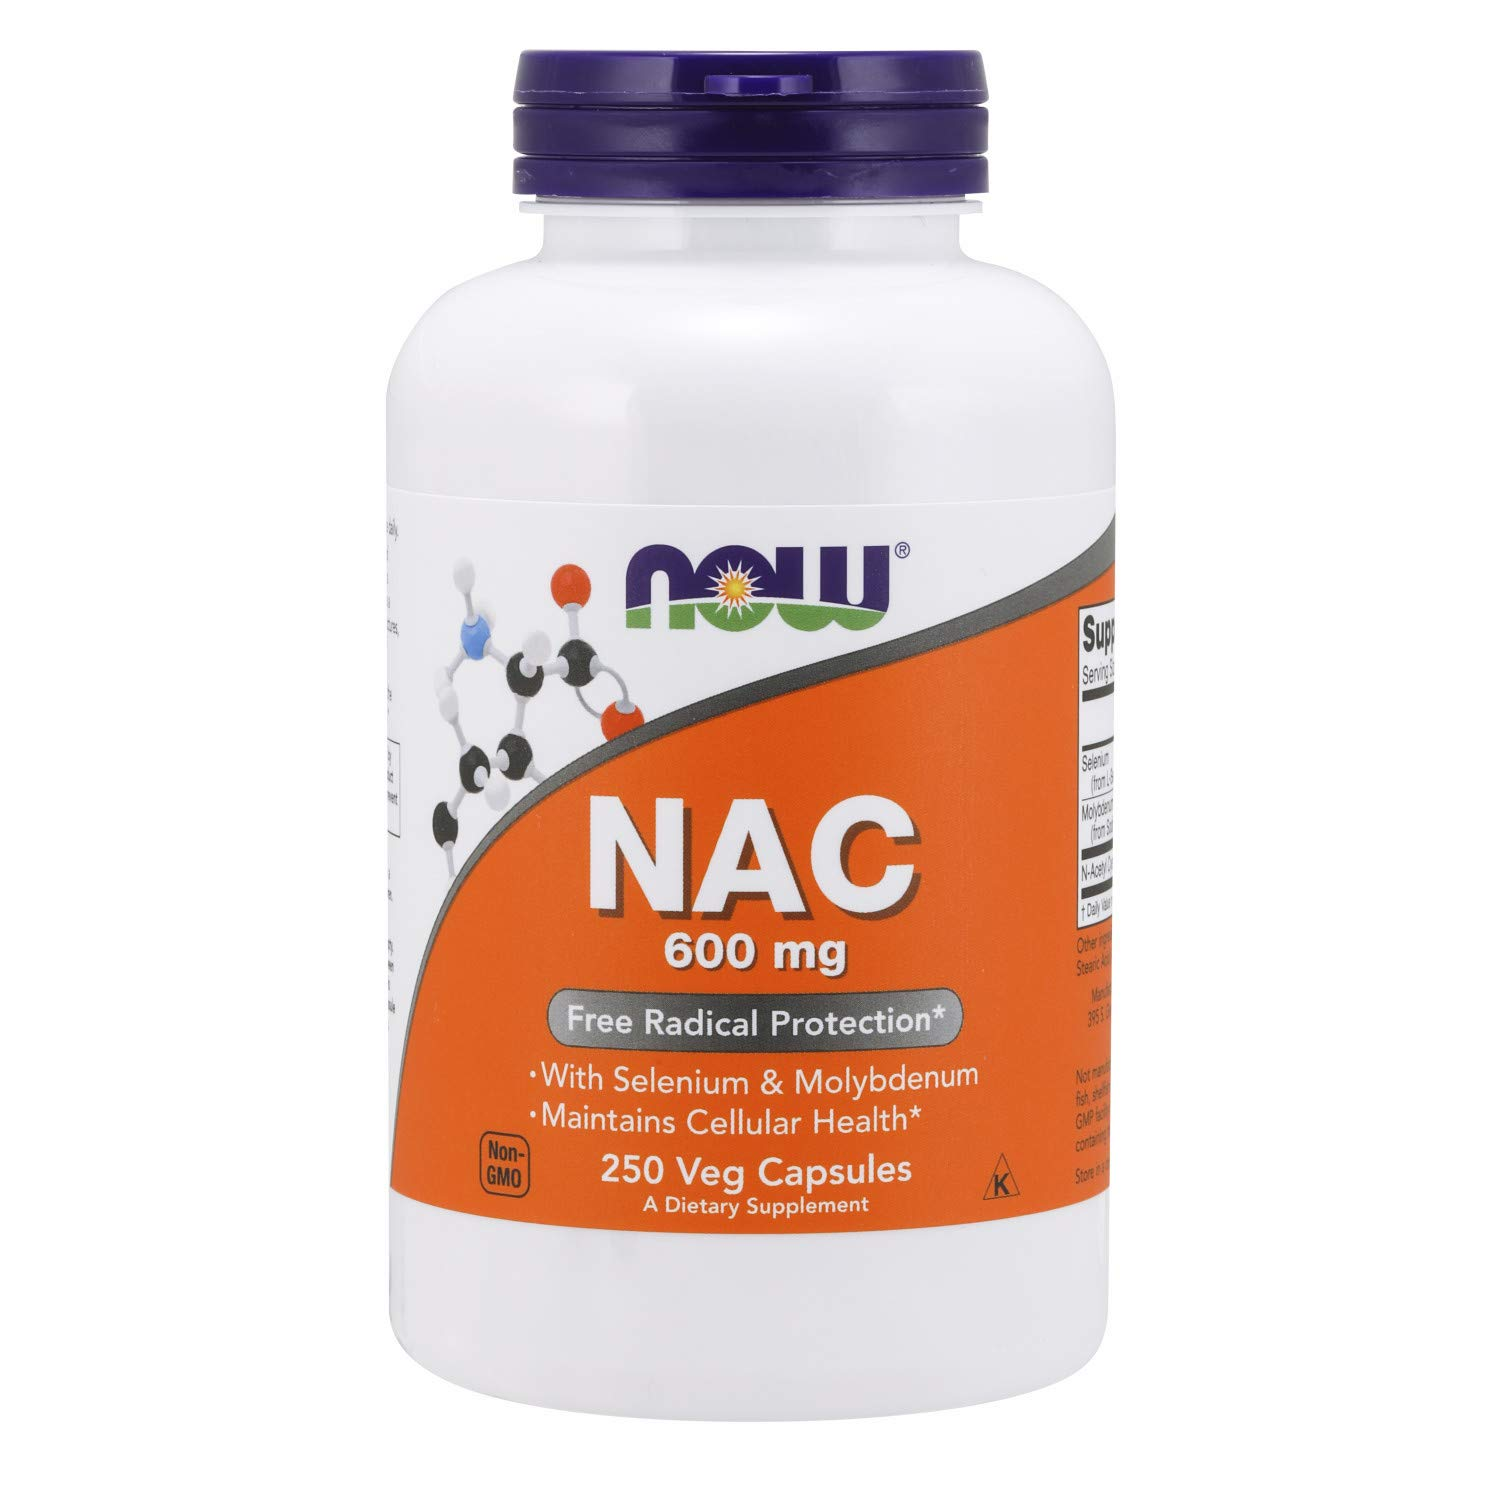 NOW Foods Supplements, NAC (N-Acetyl Cysteine) 600 mg with Selenium & Molybdenum, 250 Veg Capsules